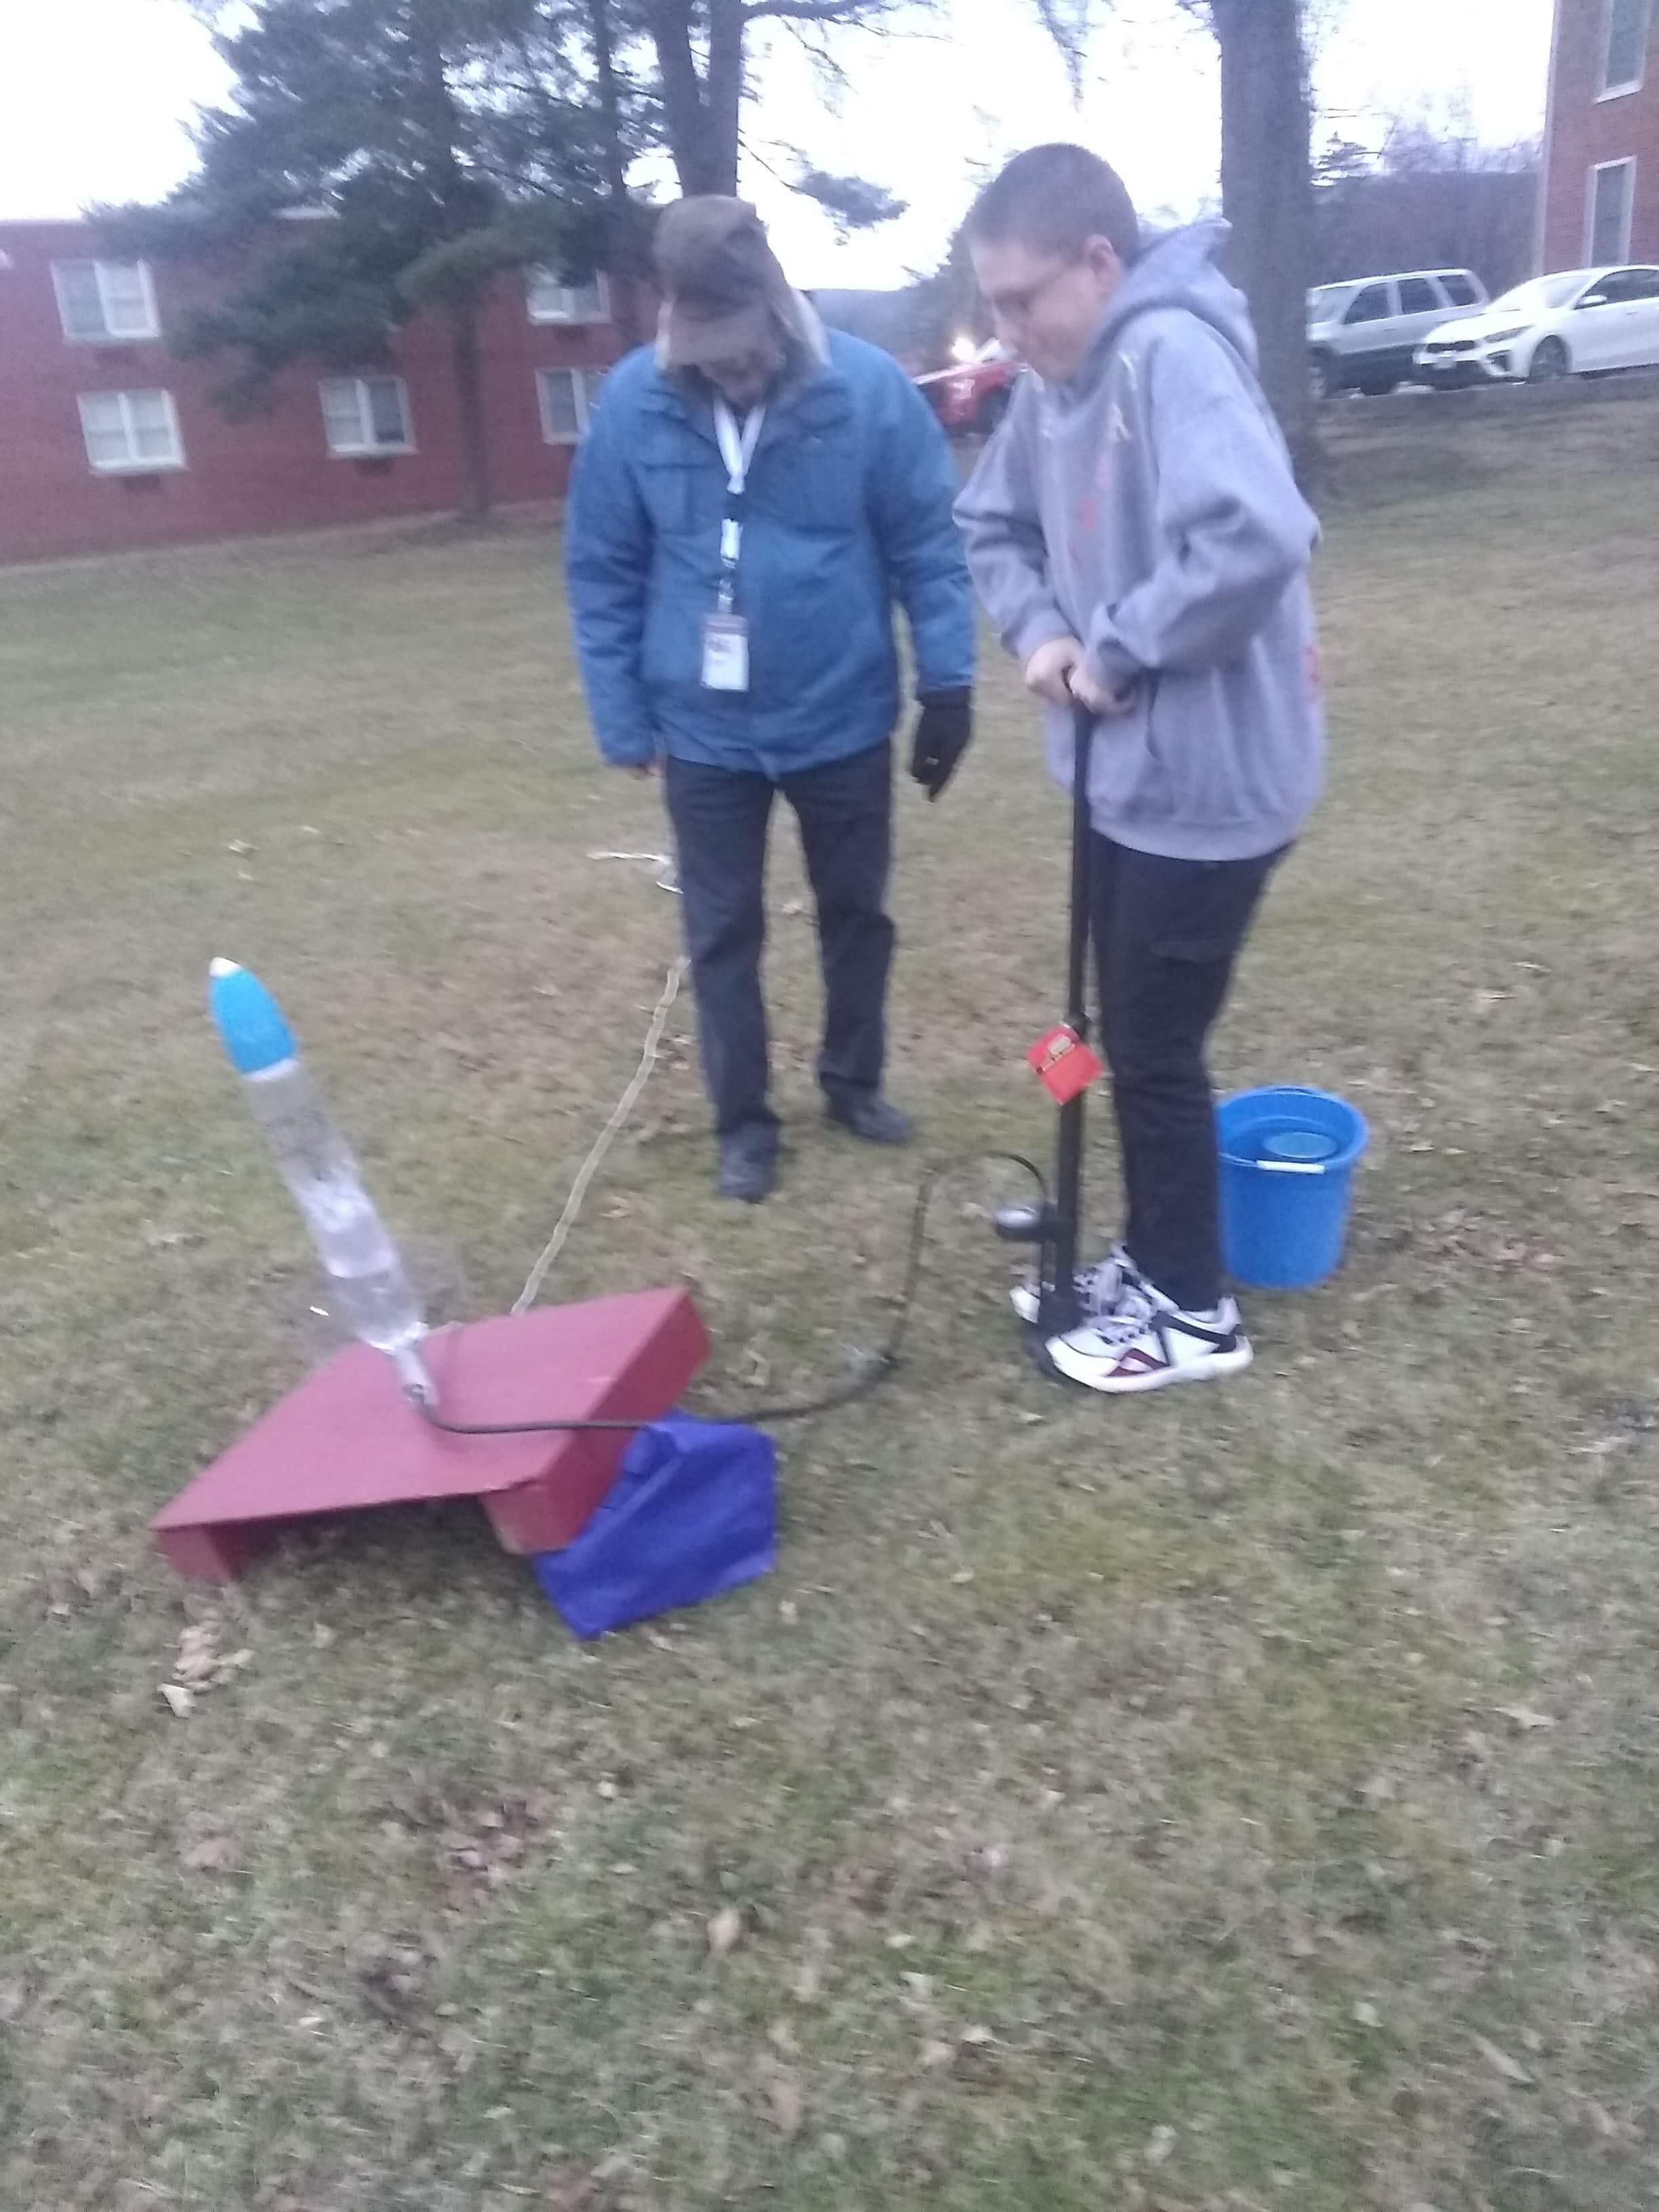 Student pushing down a pump to launch a rocket while an adult looks on